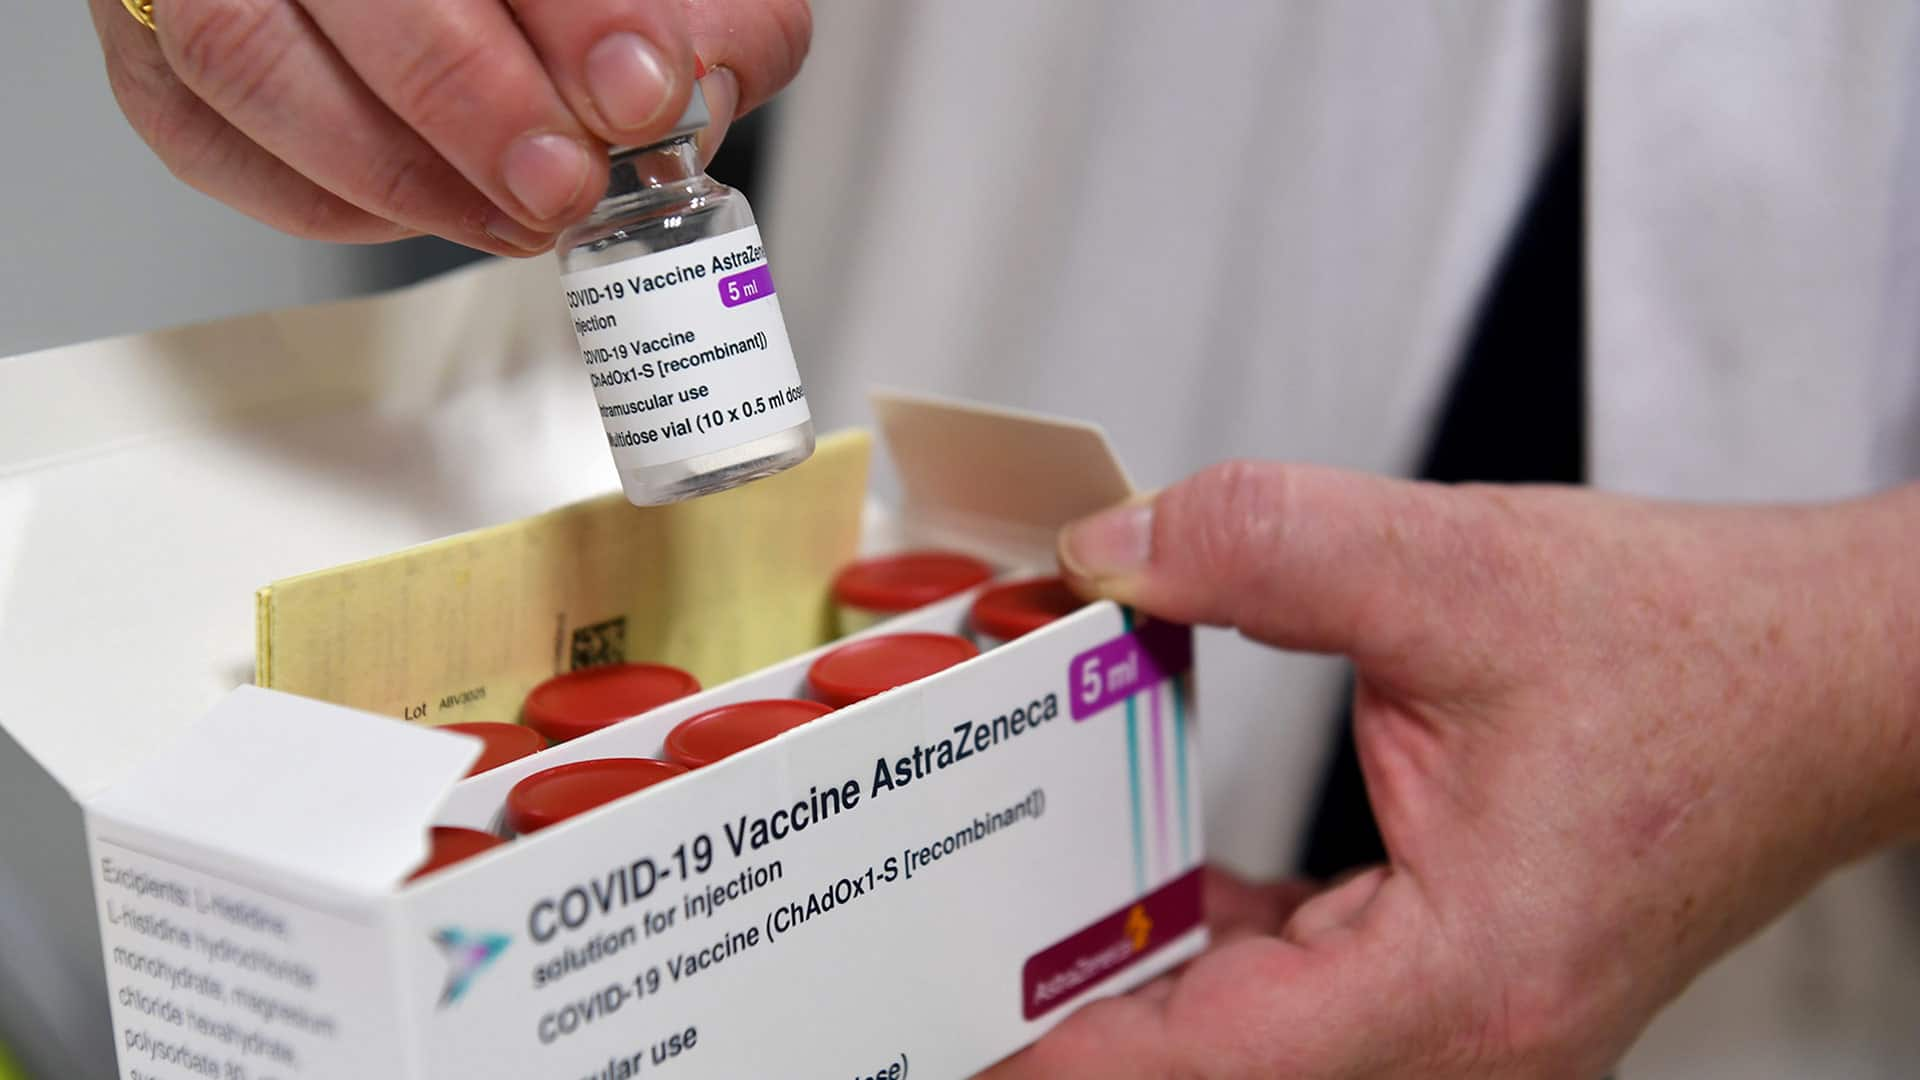 Mexico: Six arrested for selling fake COVID-19 vaccines